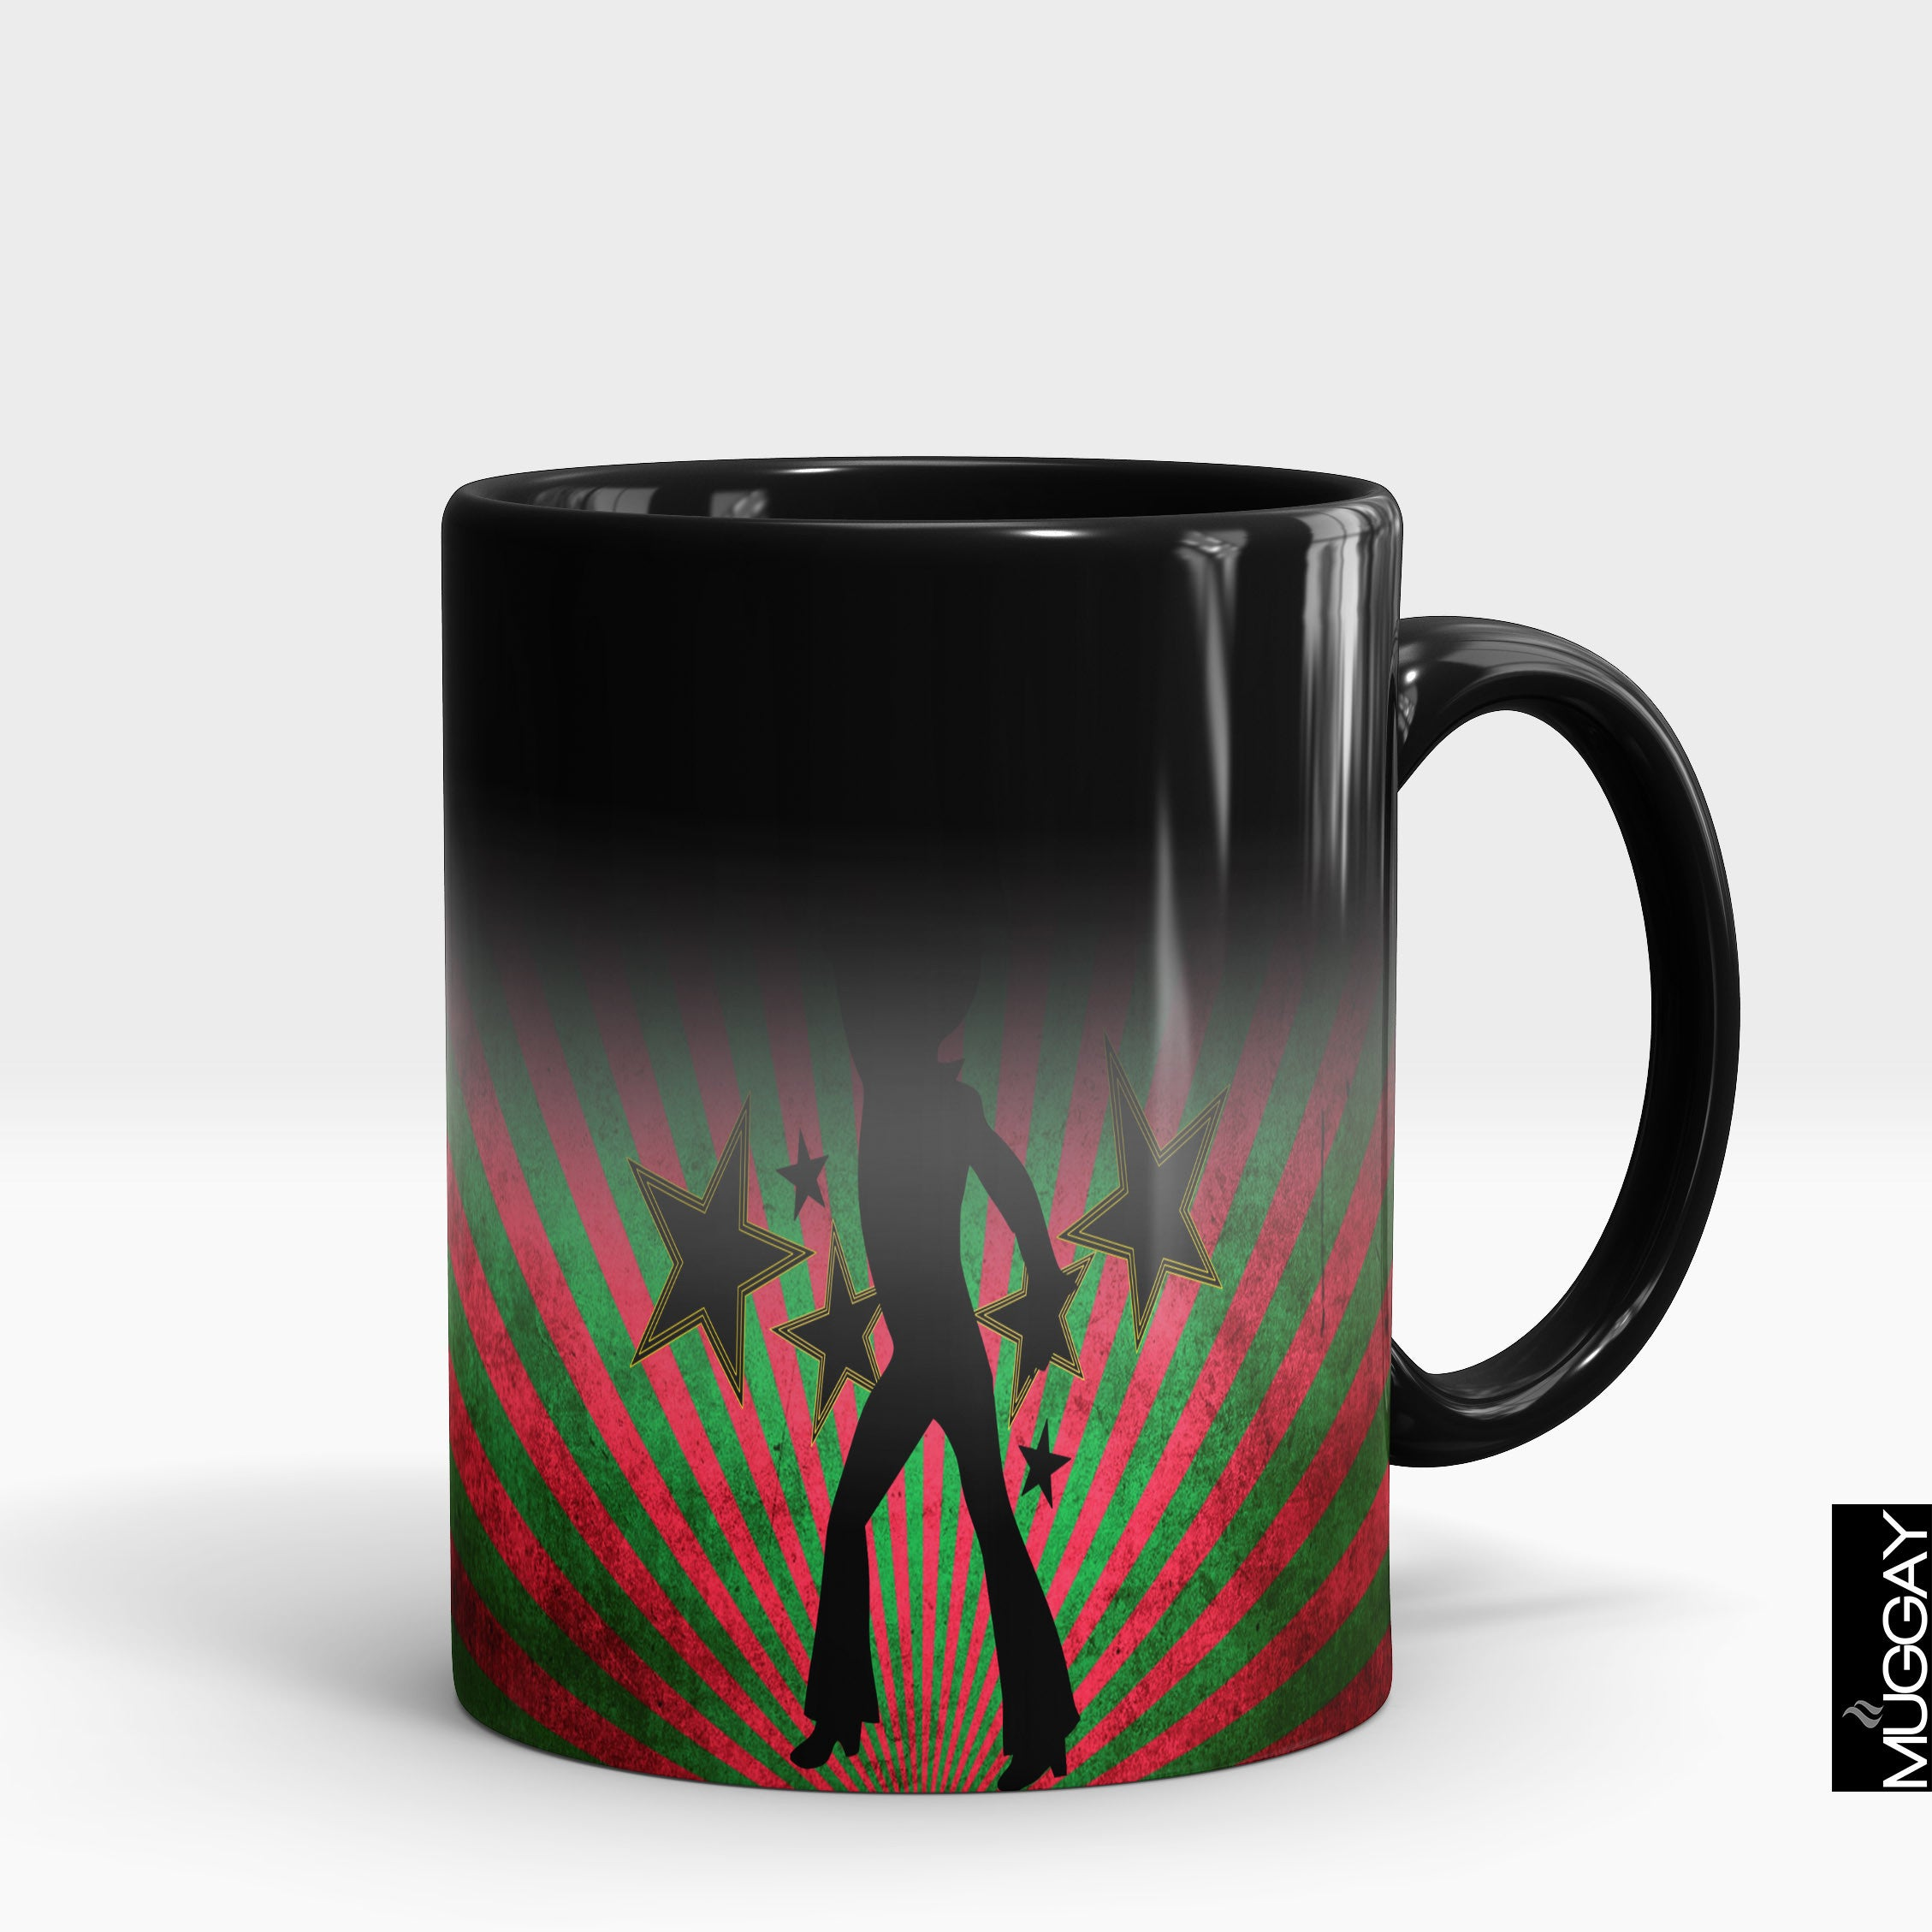 Desi funny Mugs22 - Muggay.com - Mugs - Printing shop - truck Art mugs - Mug printing - Customized printing - Digital printing - Muggay